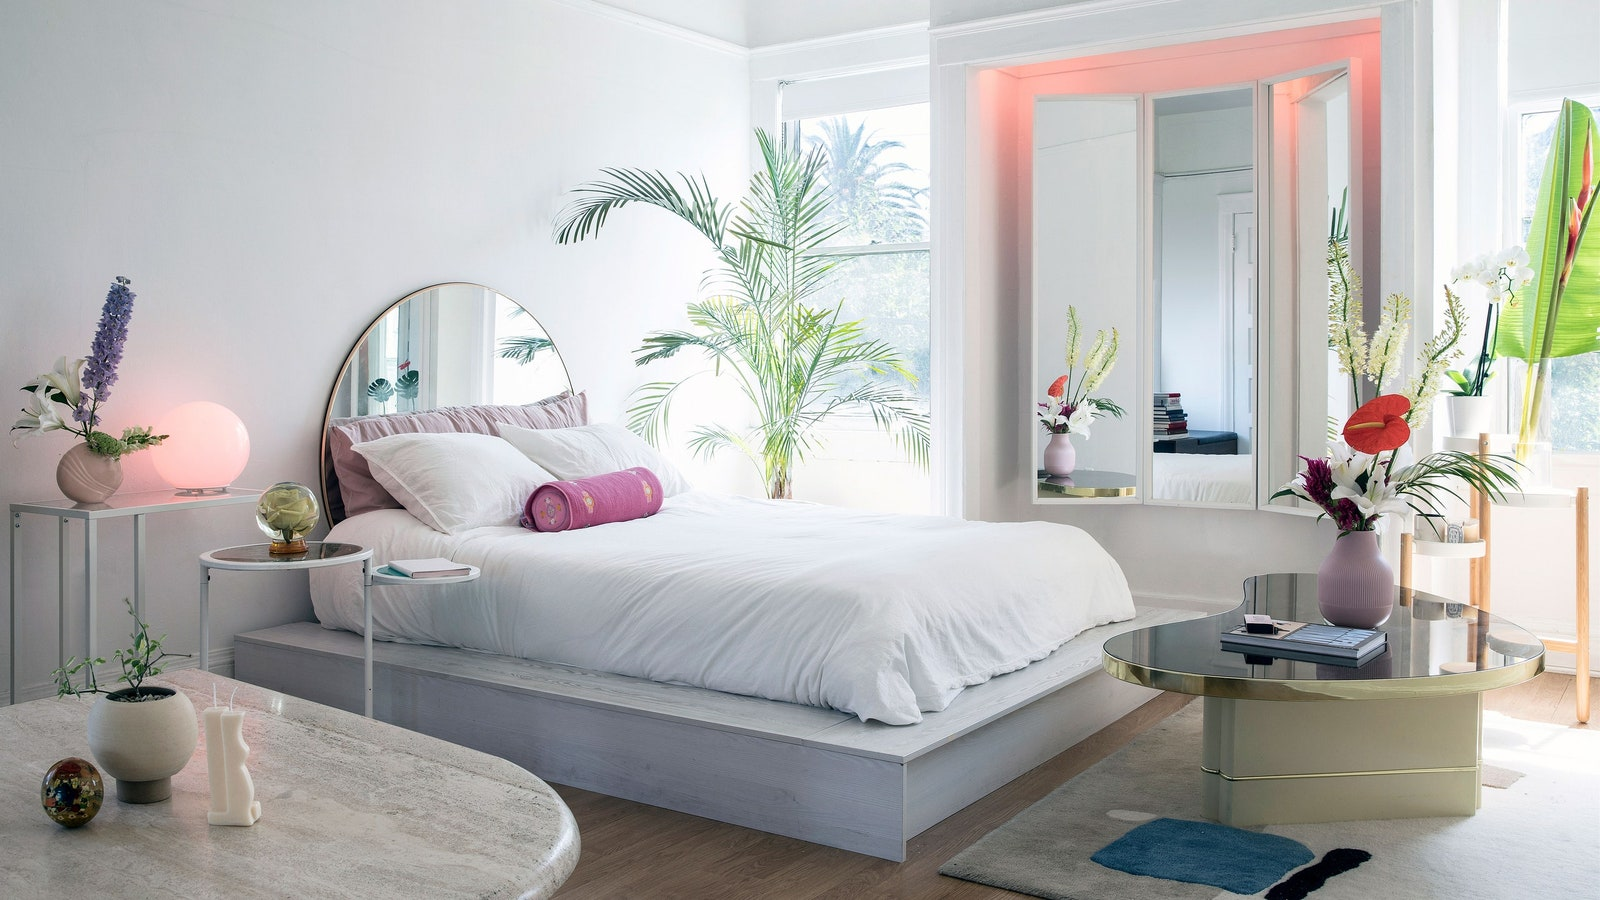 11 Ways to Make Your Bedroom a Comfortable Place to Sleep